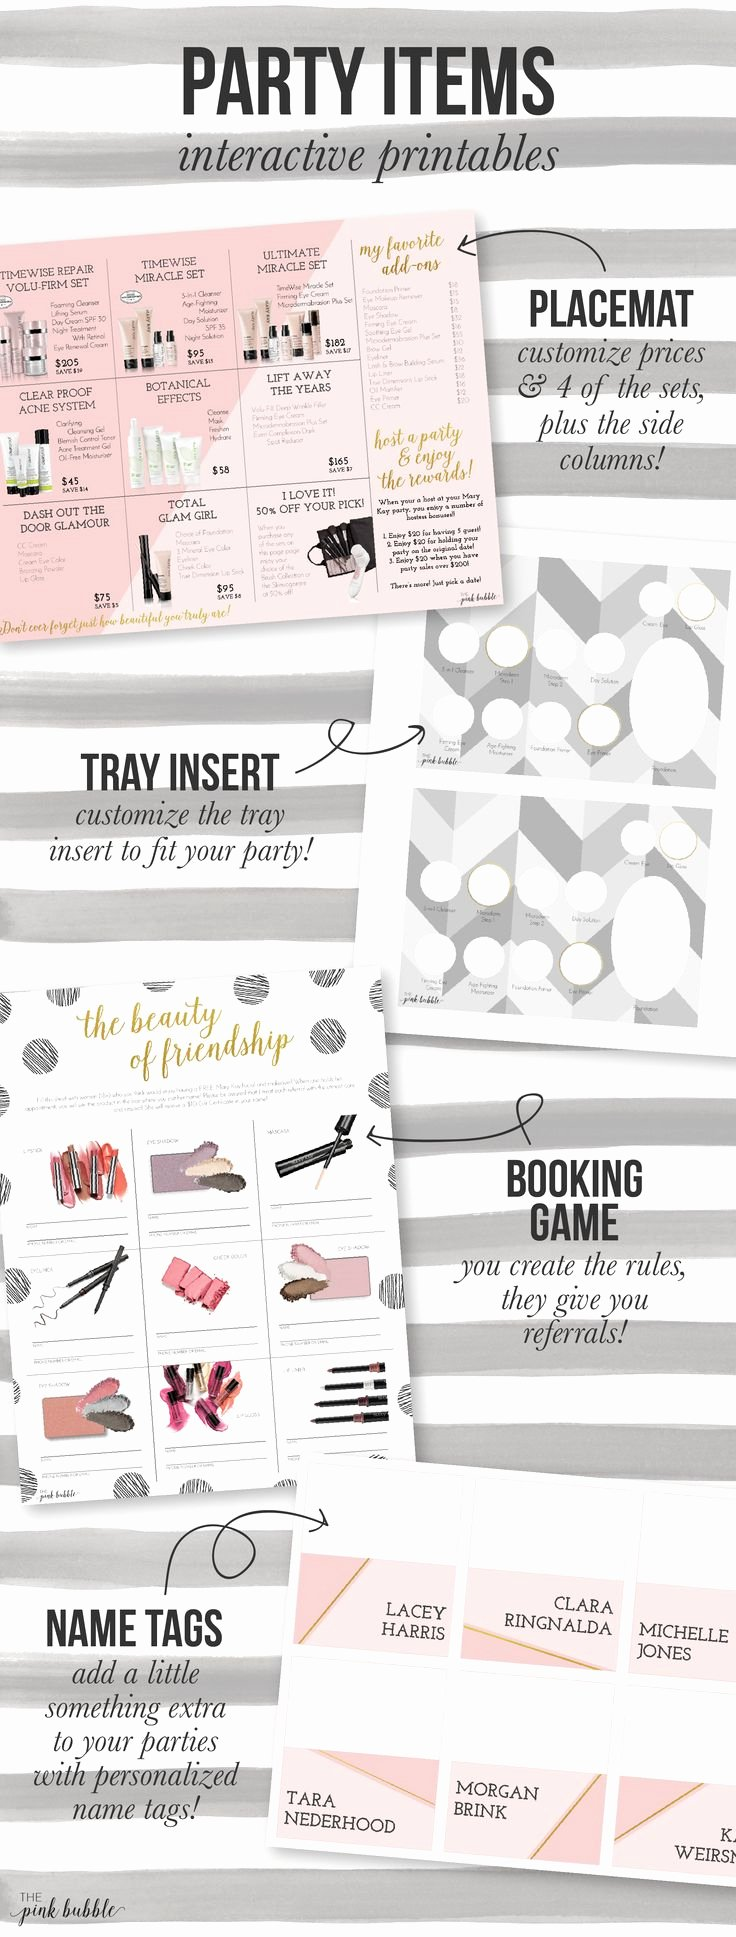 Mary Kay Customer Profile Template New 25 Best Ideas About Mary Kay Party On Pinterest